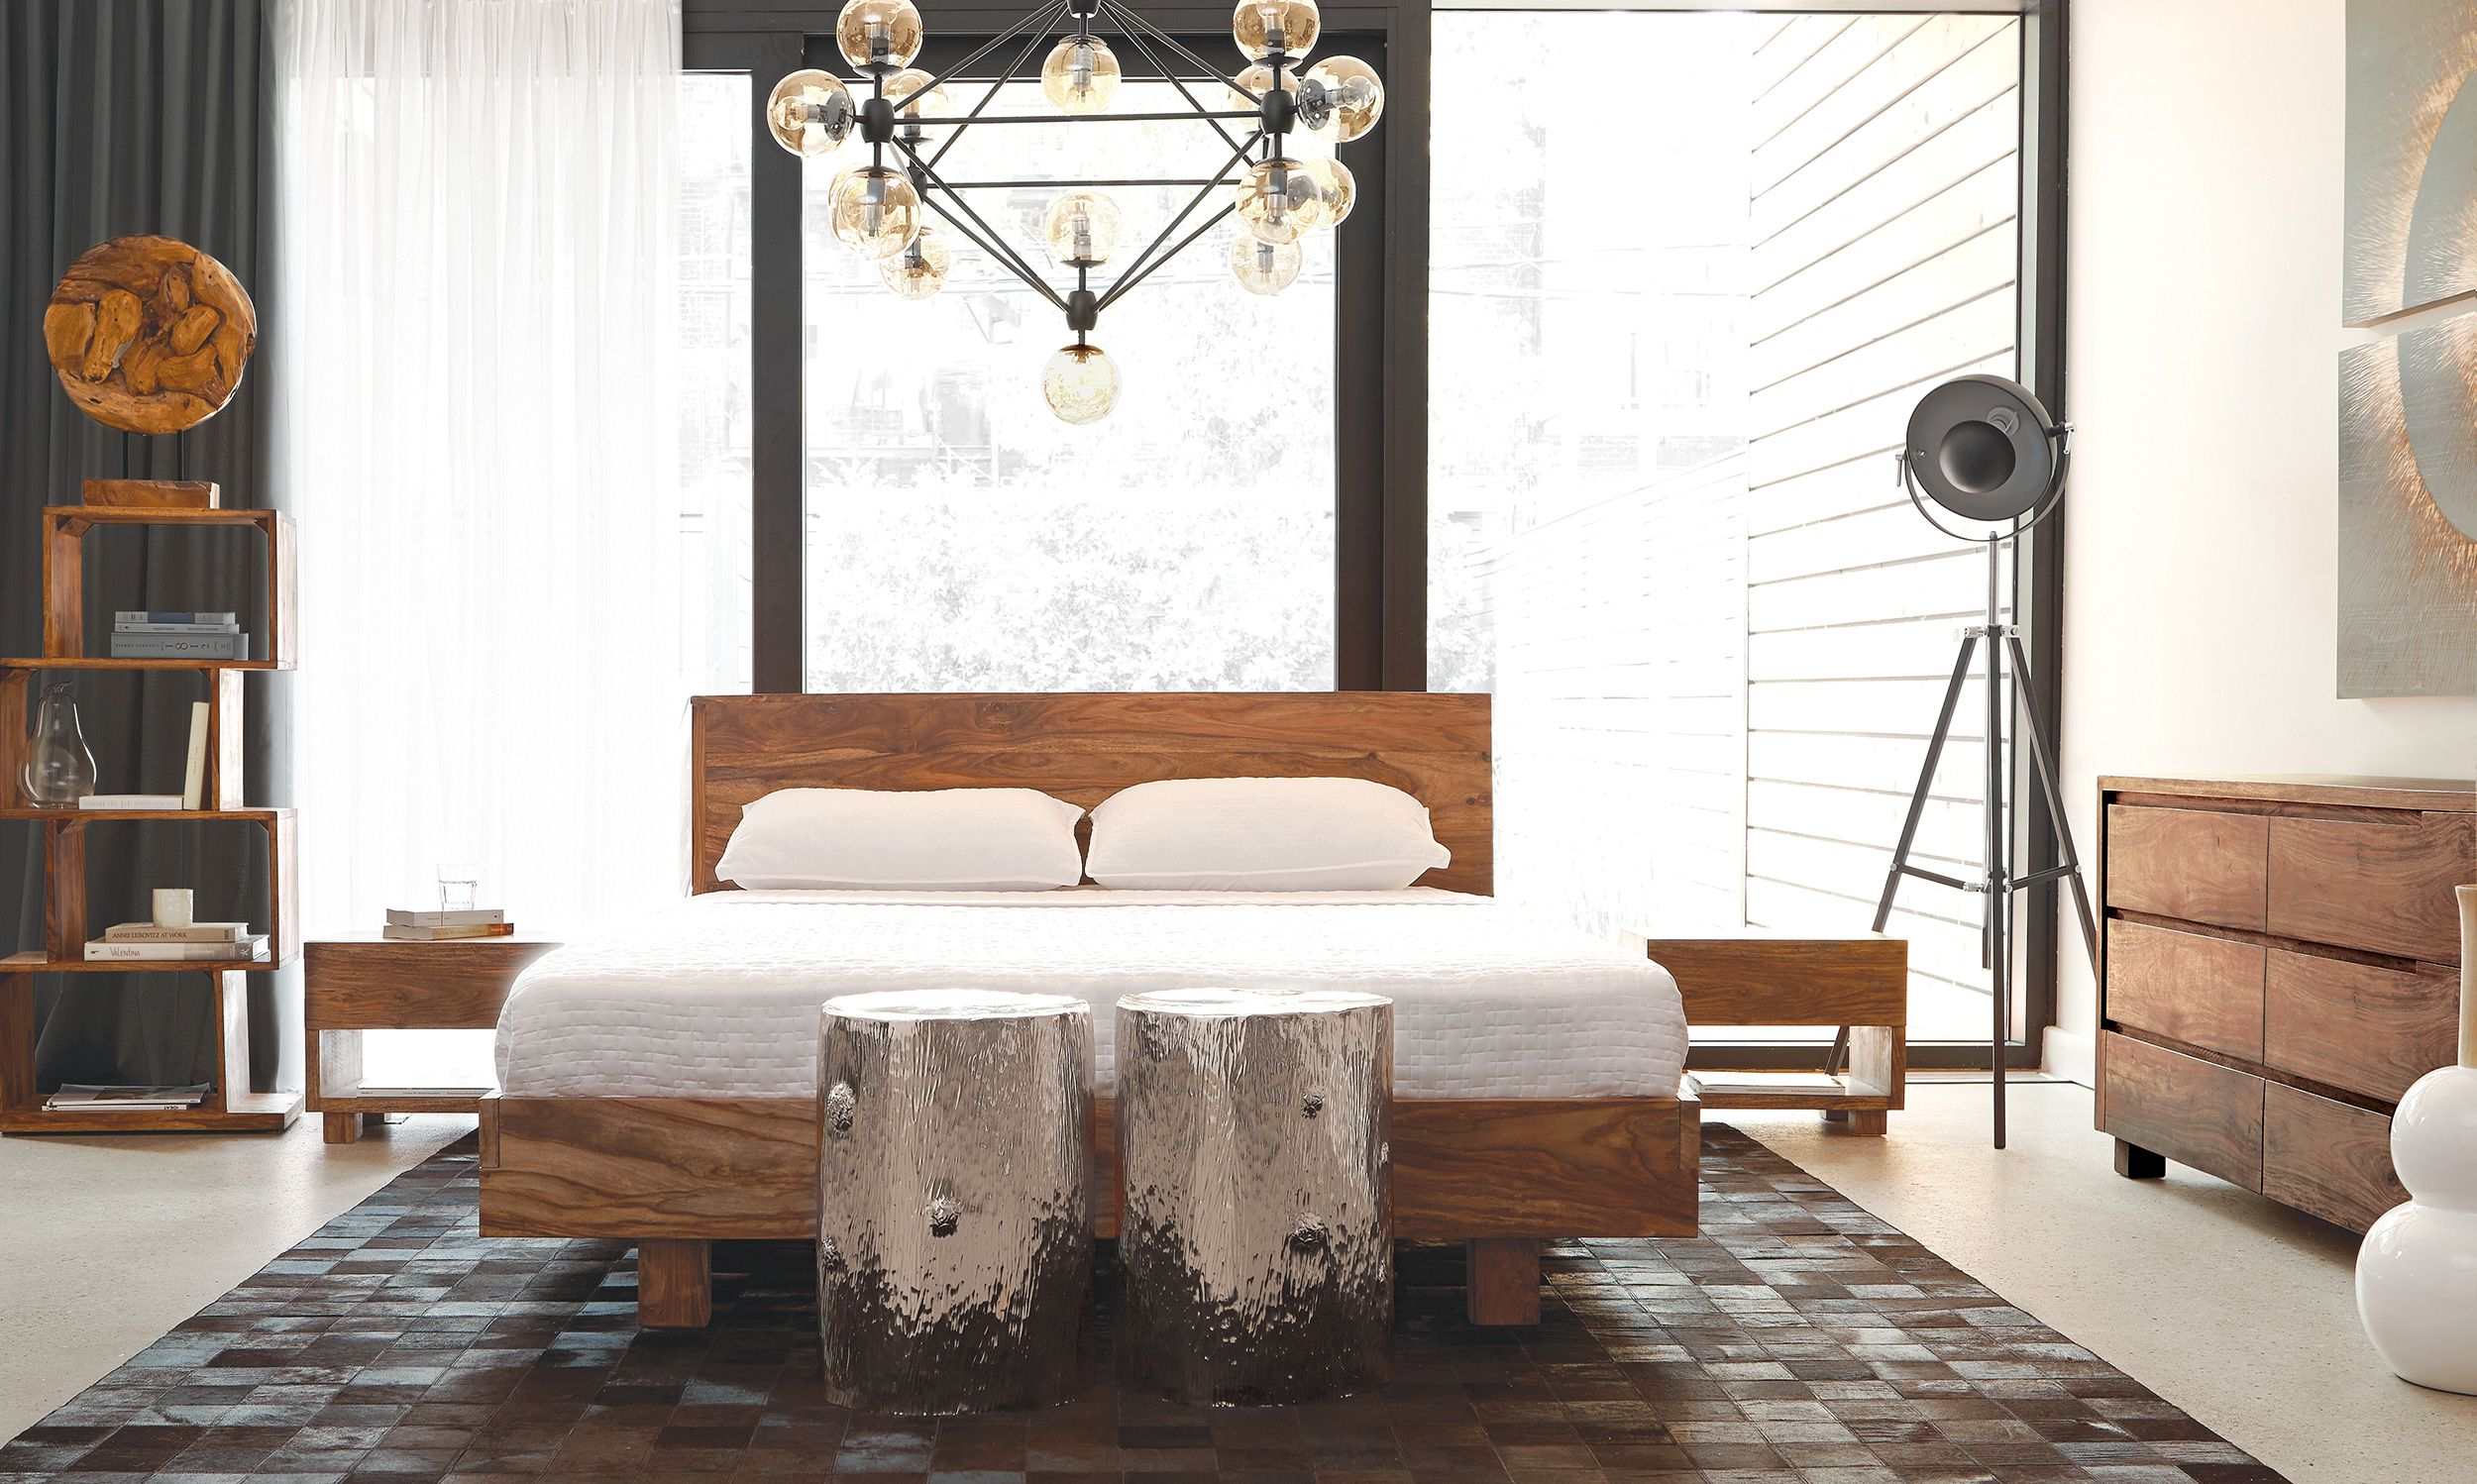 Bedroom With Modern Light Fixture, Wood Bed Frame And White